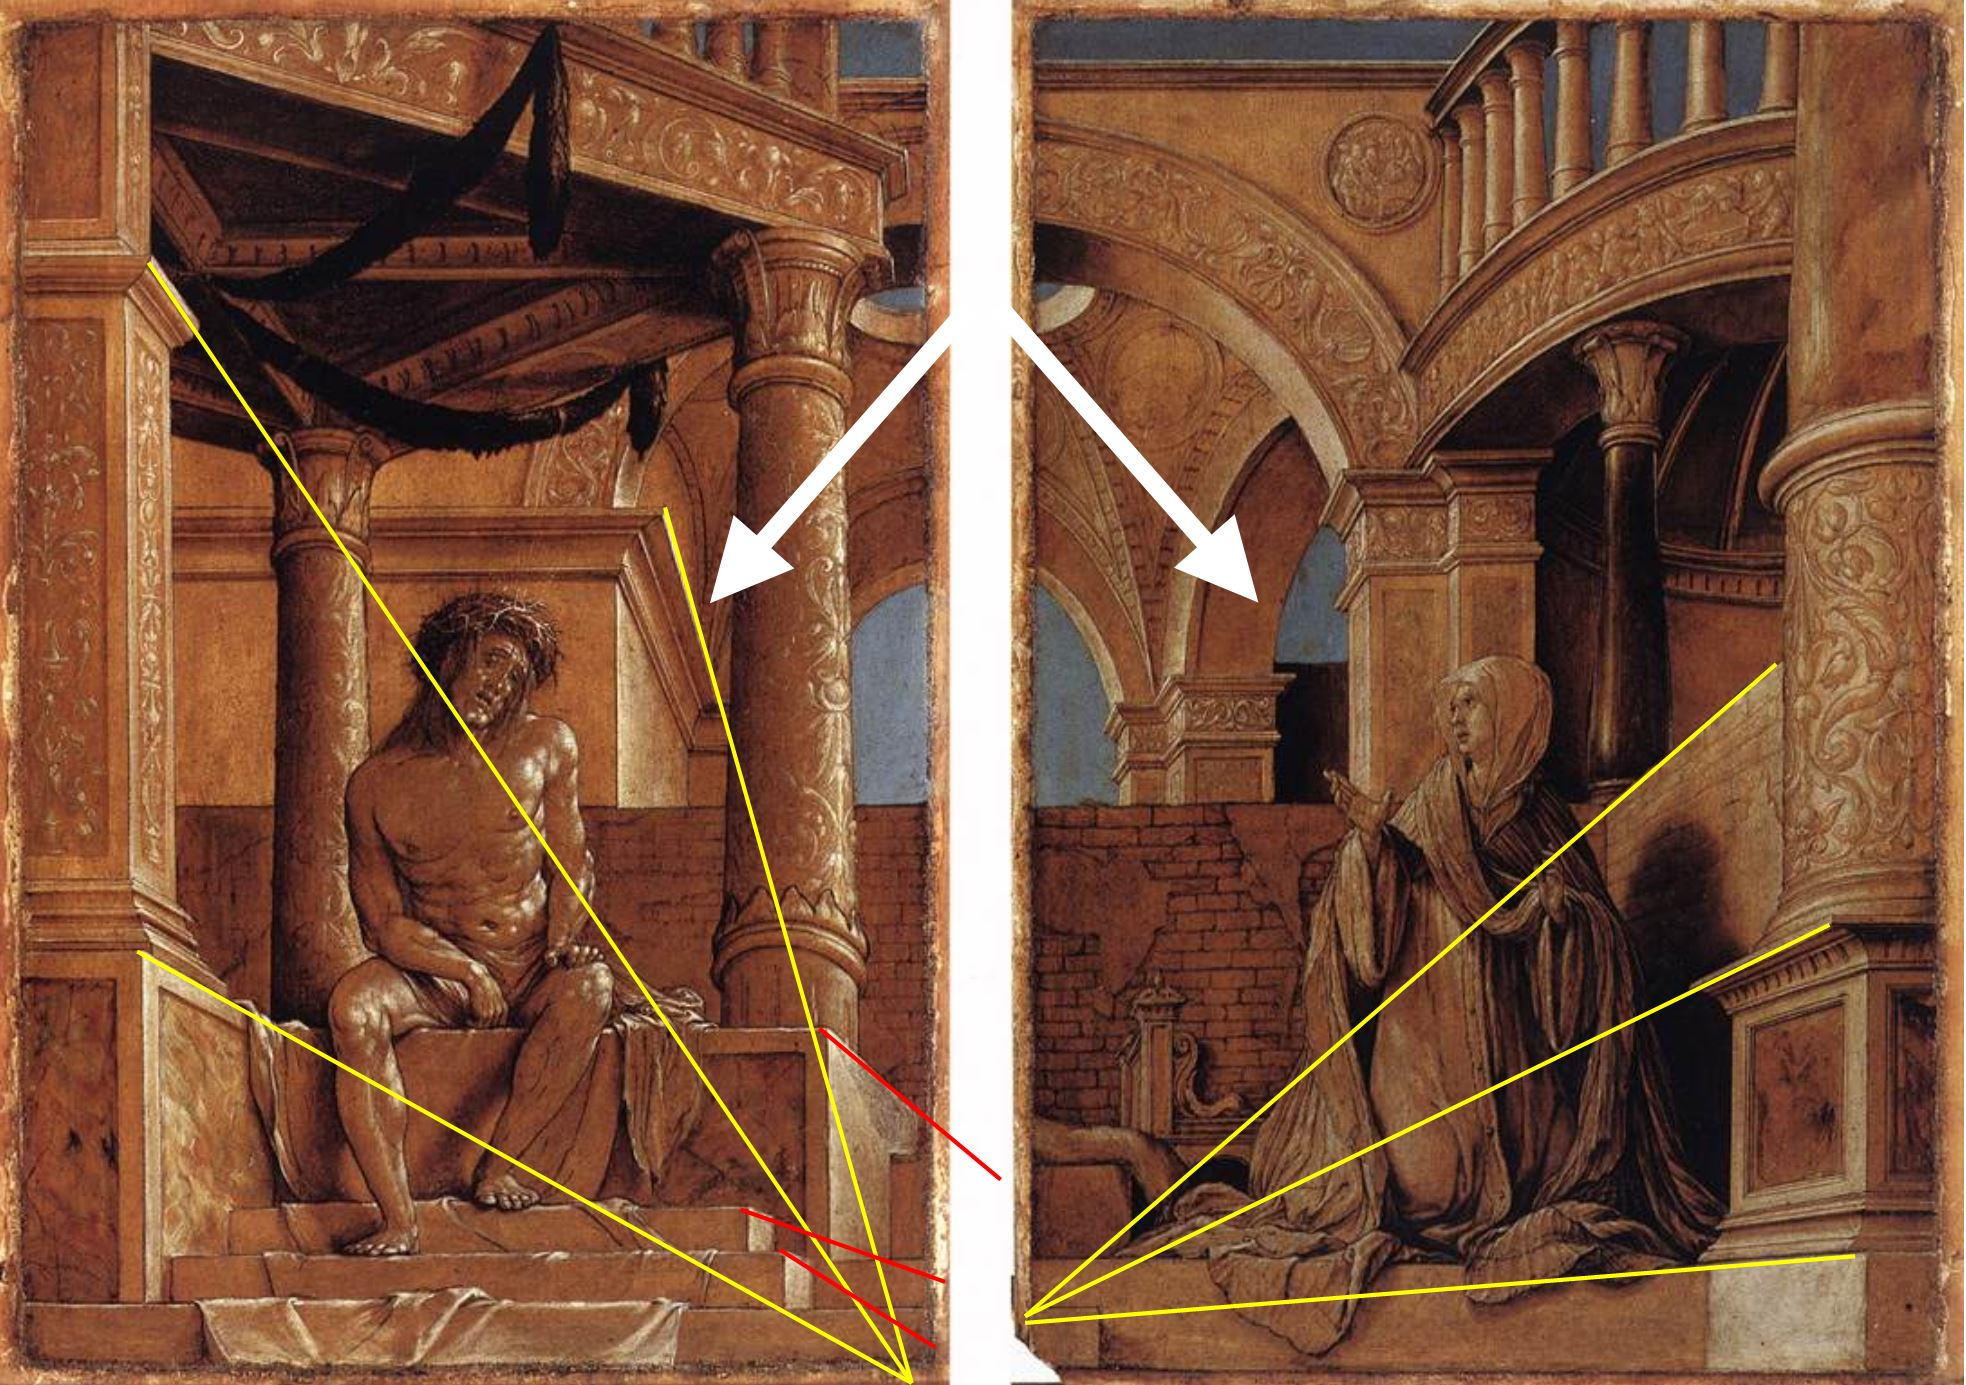 1521 hans-holbein diptych-with-christ-and-the-mater-dolorosa Kunstmuseum, Offentliche Kunstsammlung, Basel perspective